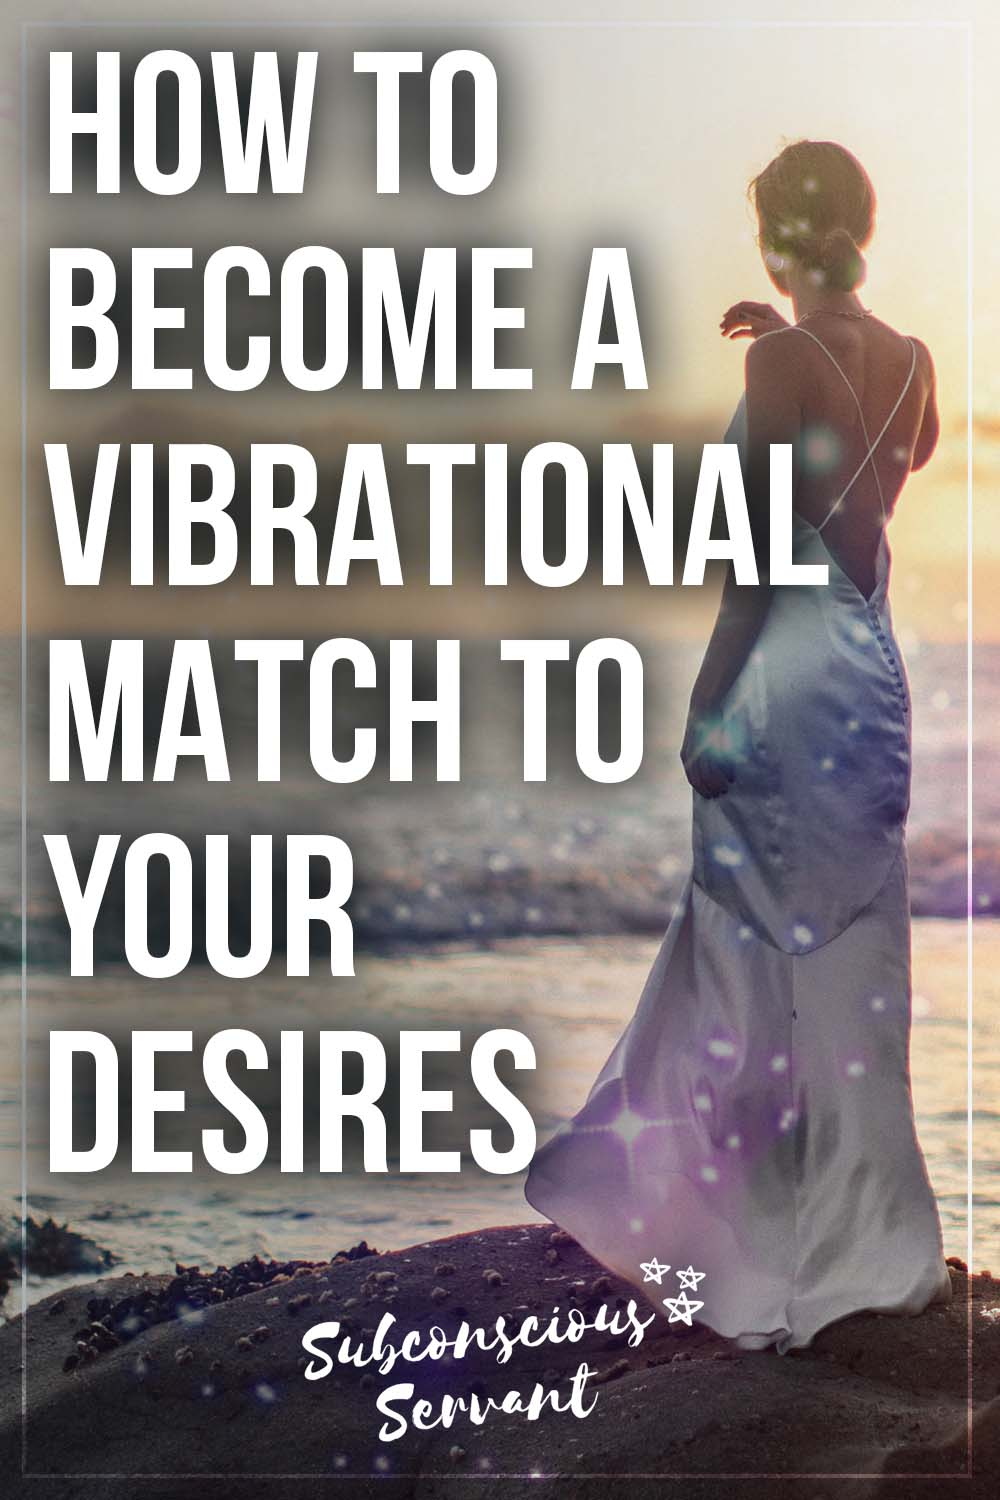 How To Become A Vibrational Match To Your Desire - Law Of Attraction